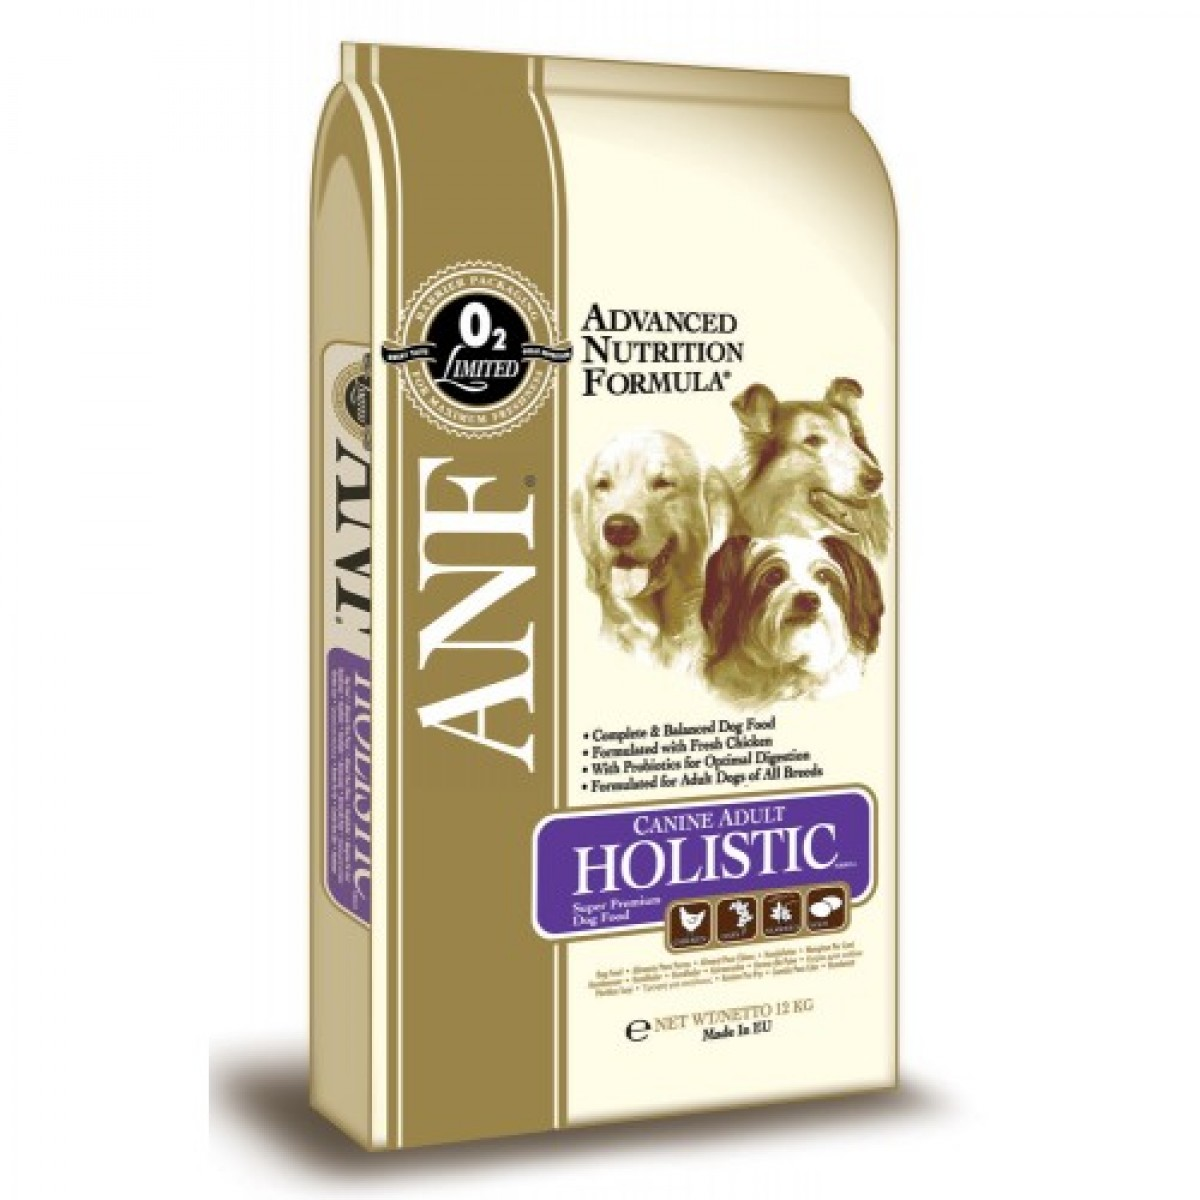 Anf Canine Holistic Dog Food Reviews